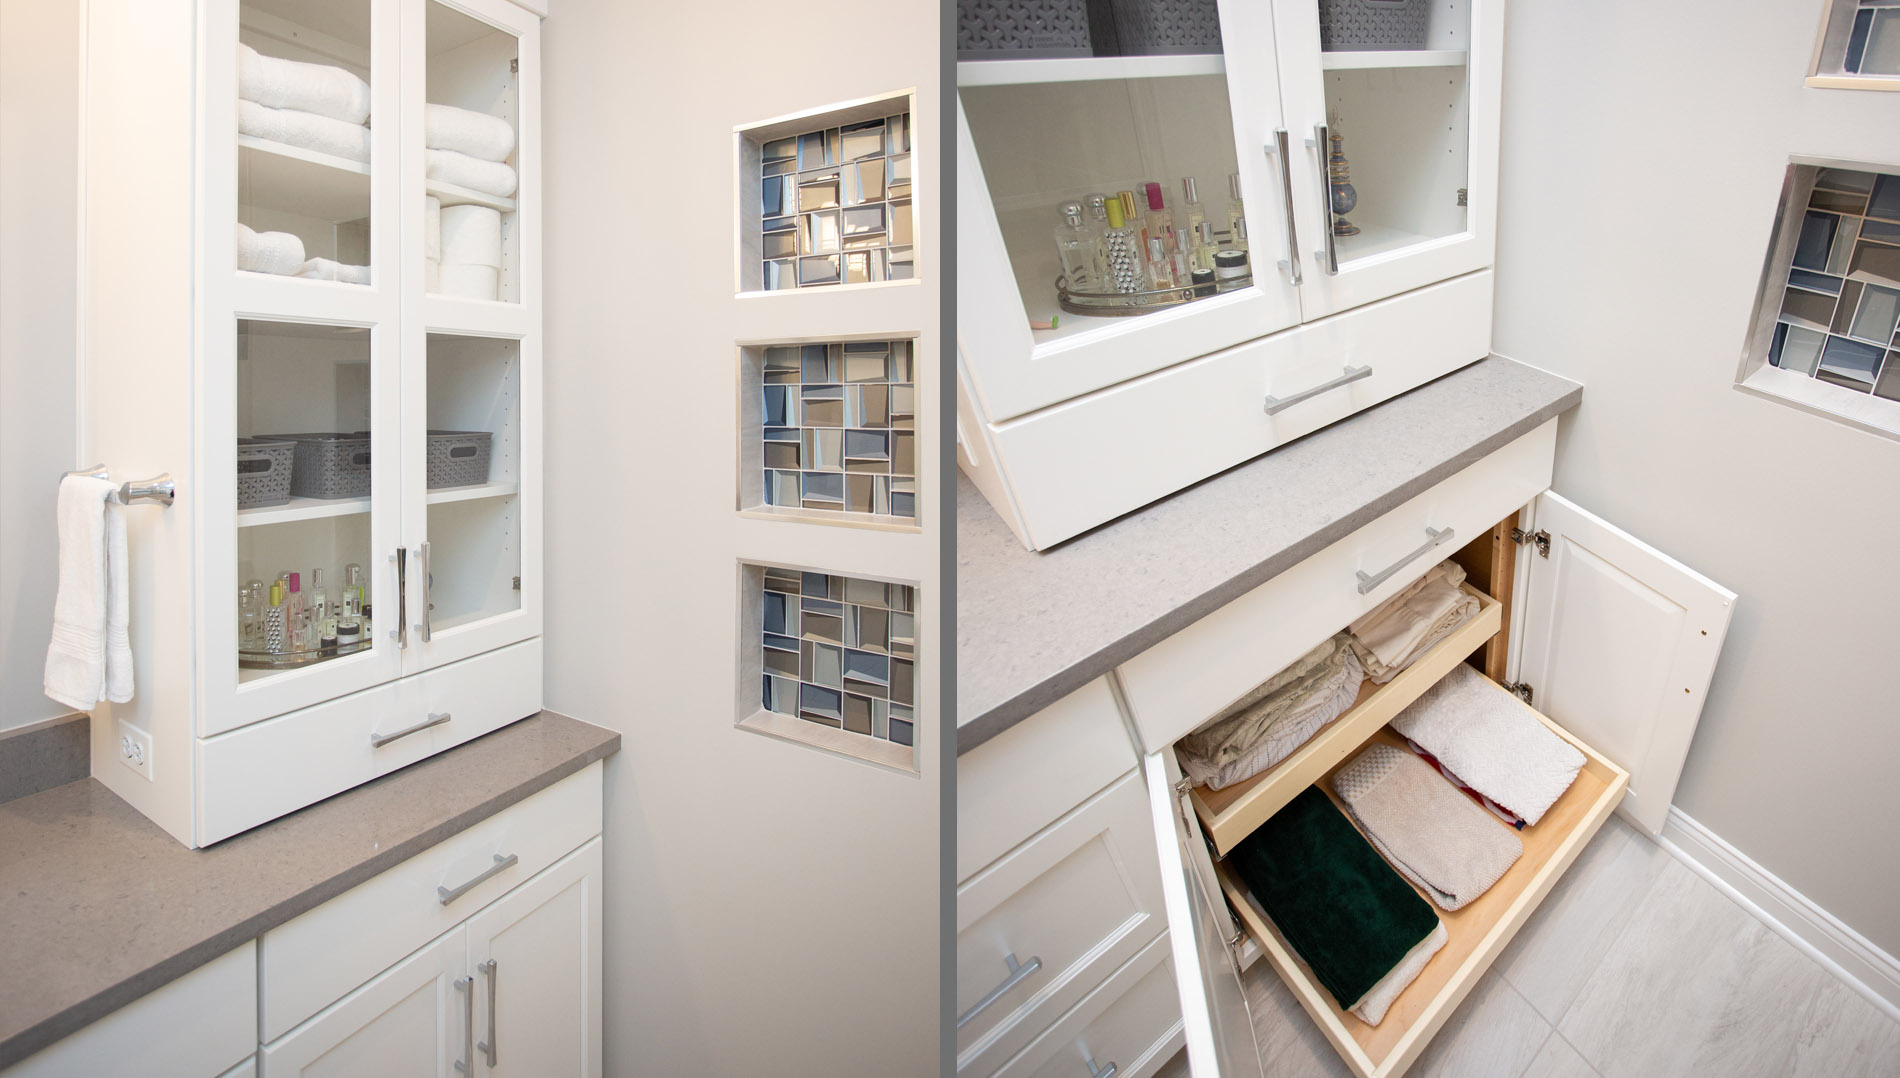 Linen storage cabinet with glass mullion doors and roll out shelves in the base cabinet.